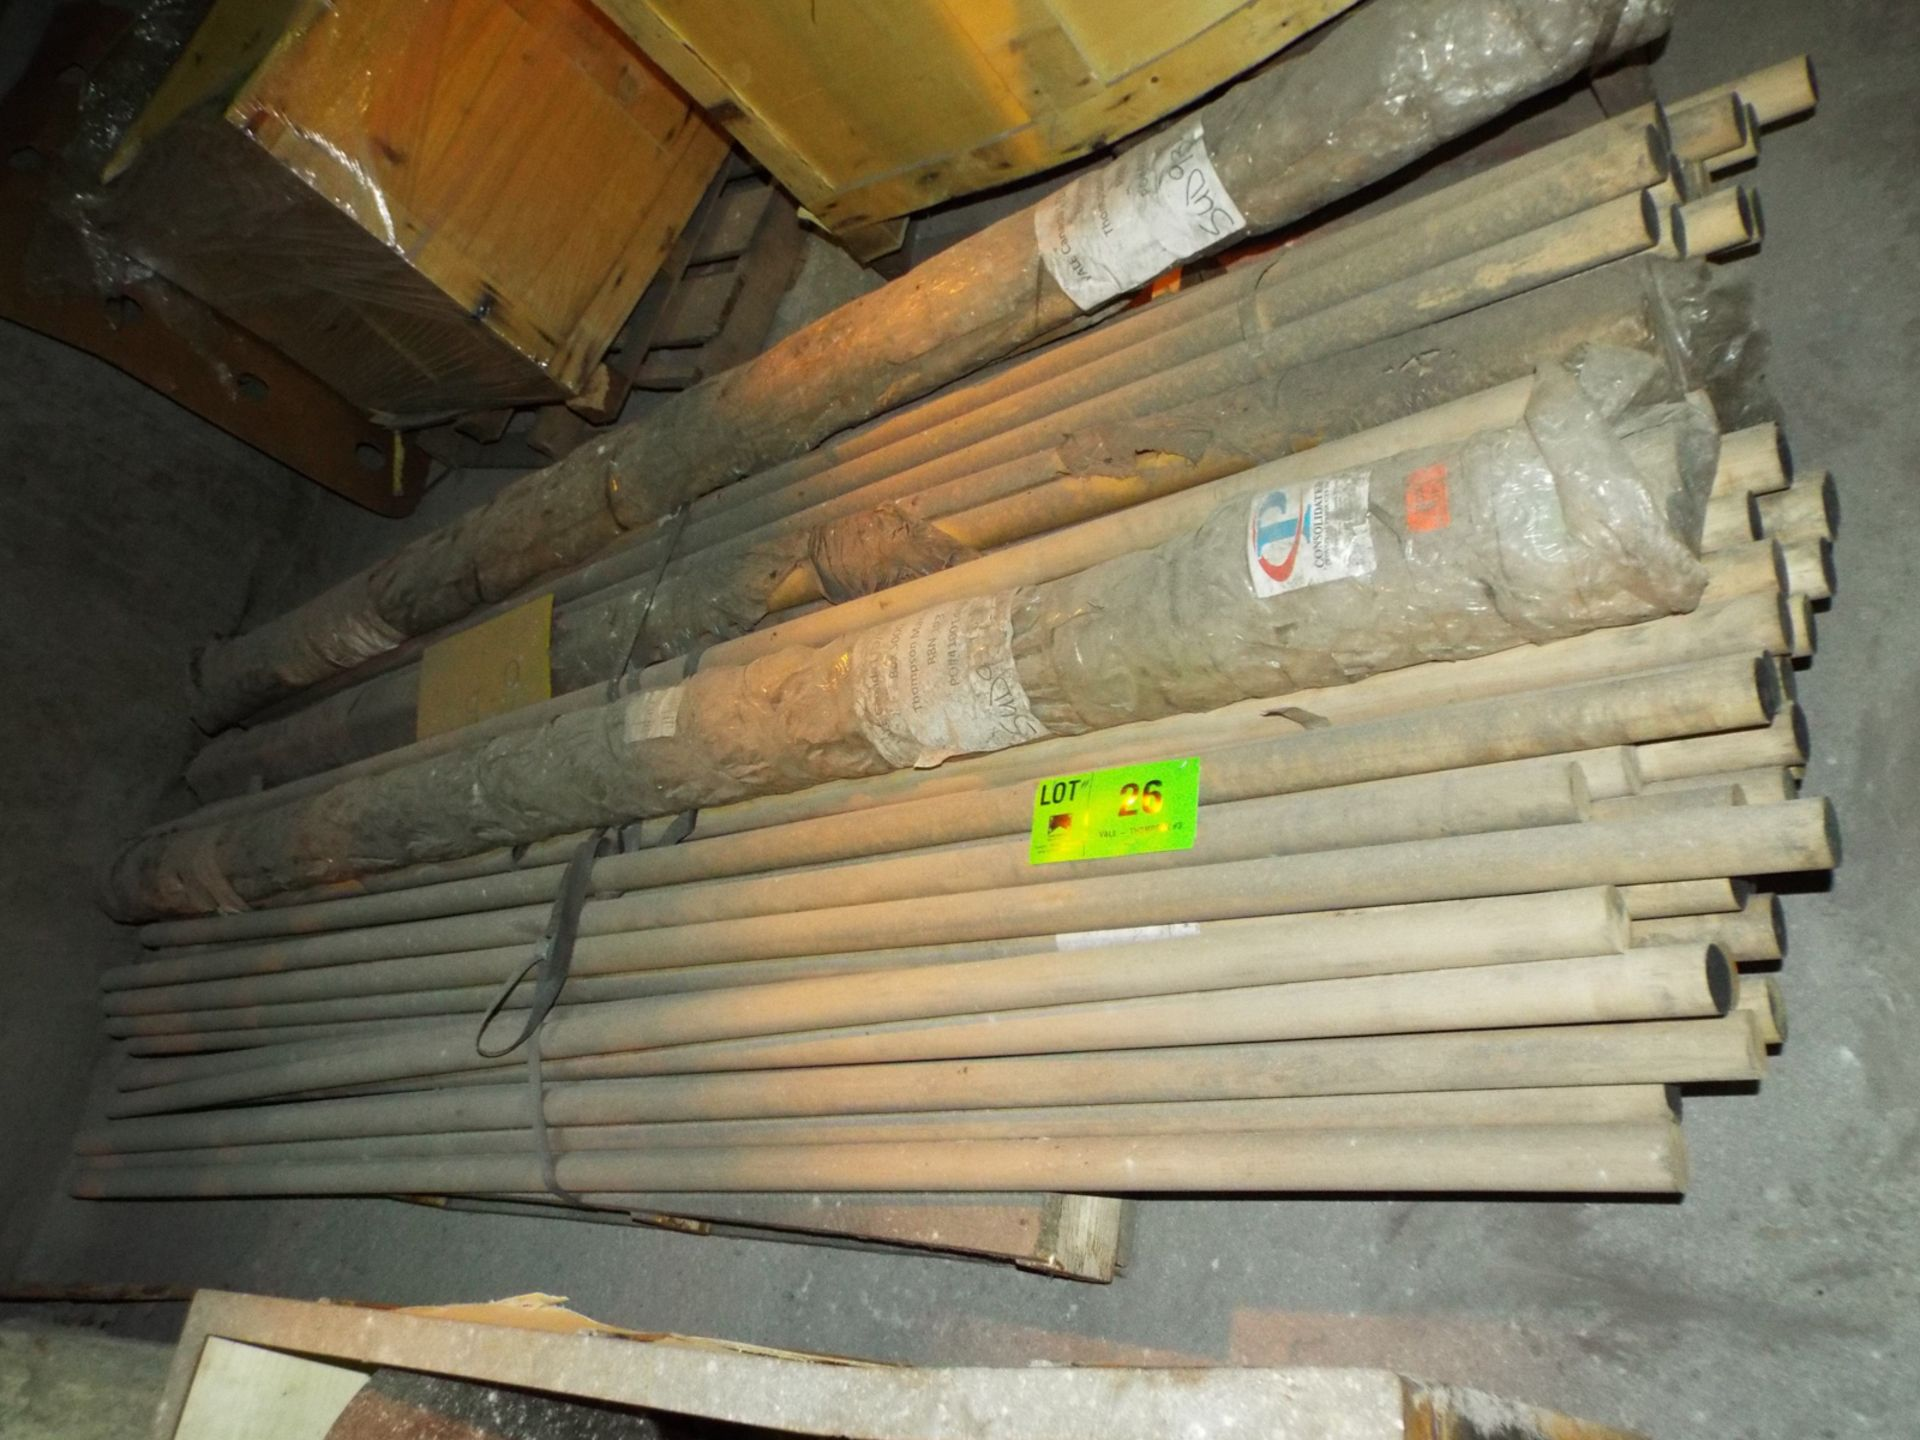 "Lot 26 - LOT/ CONTENTS OF SKID - (APPROX. 290') MAPLE HARDWOOD DOWELS 1-3/4"" DIA. X 9"" CUT TO LENGTH (PLT"